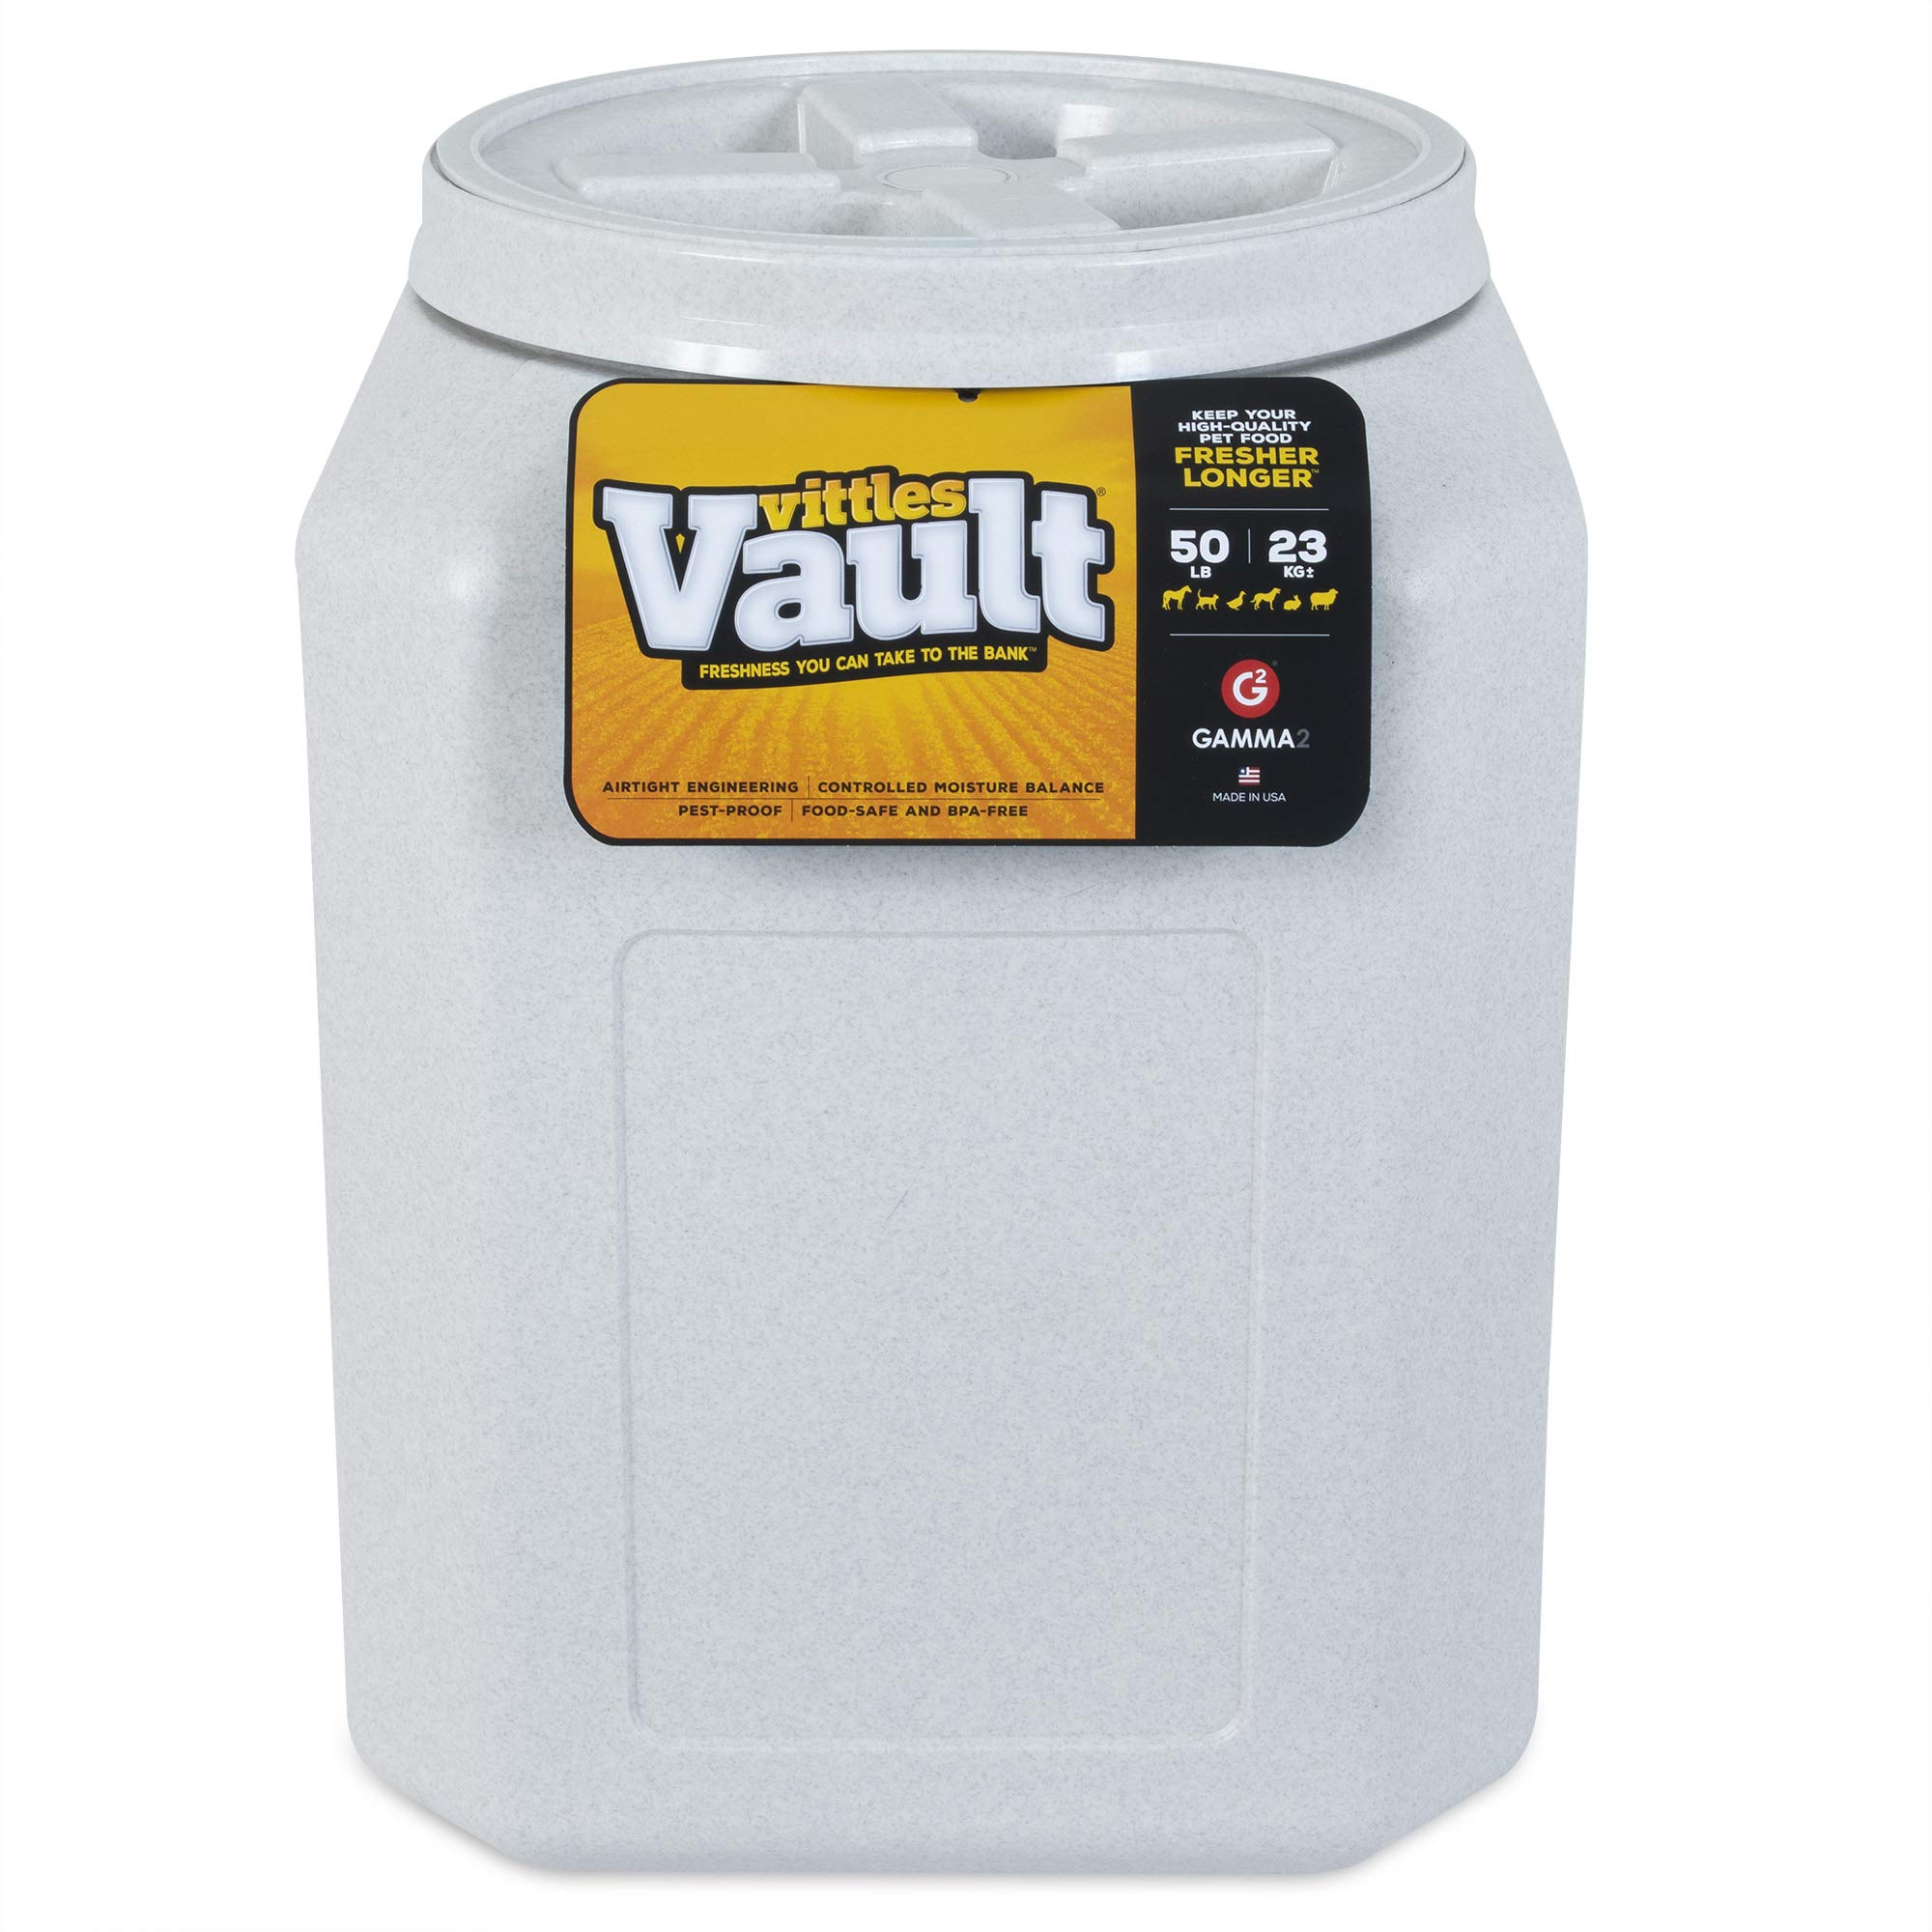 Gamma2 Vittles Vault Airtight Pet Food Storage Container